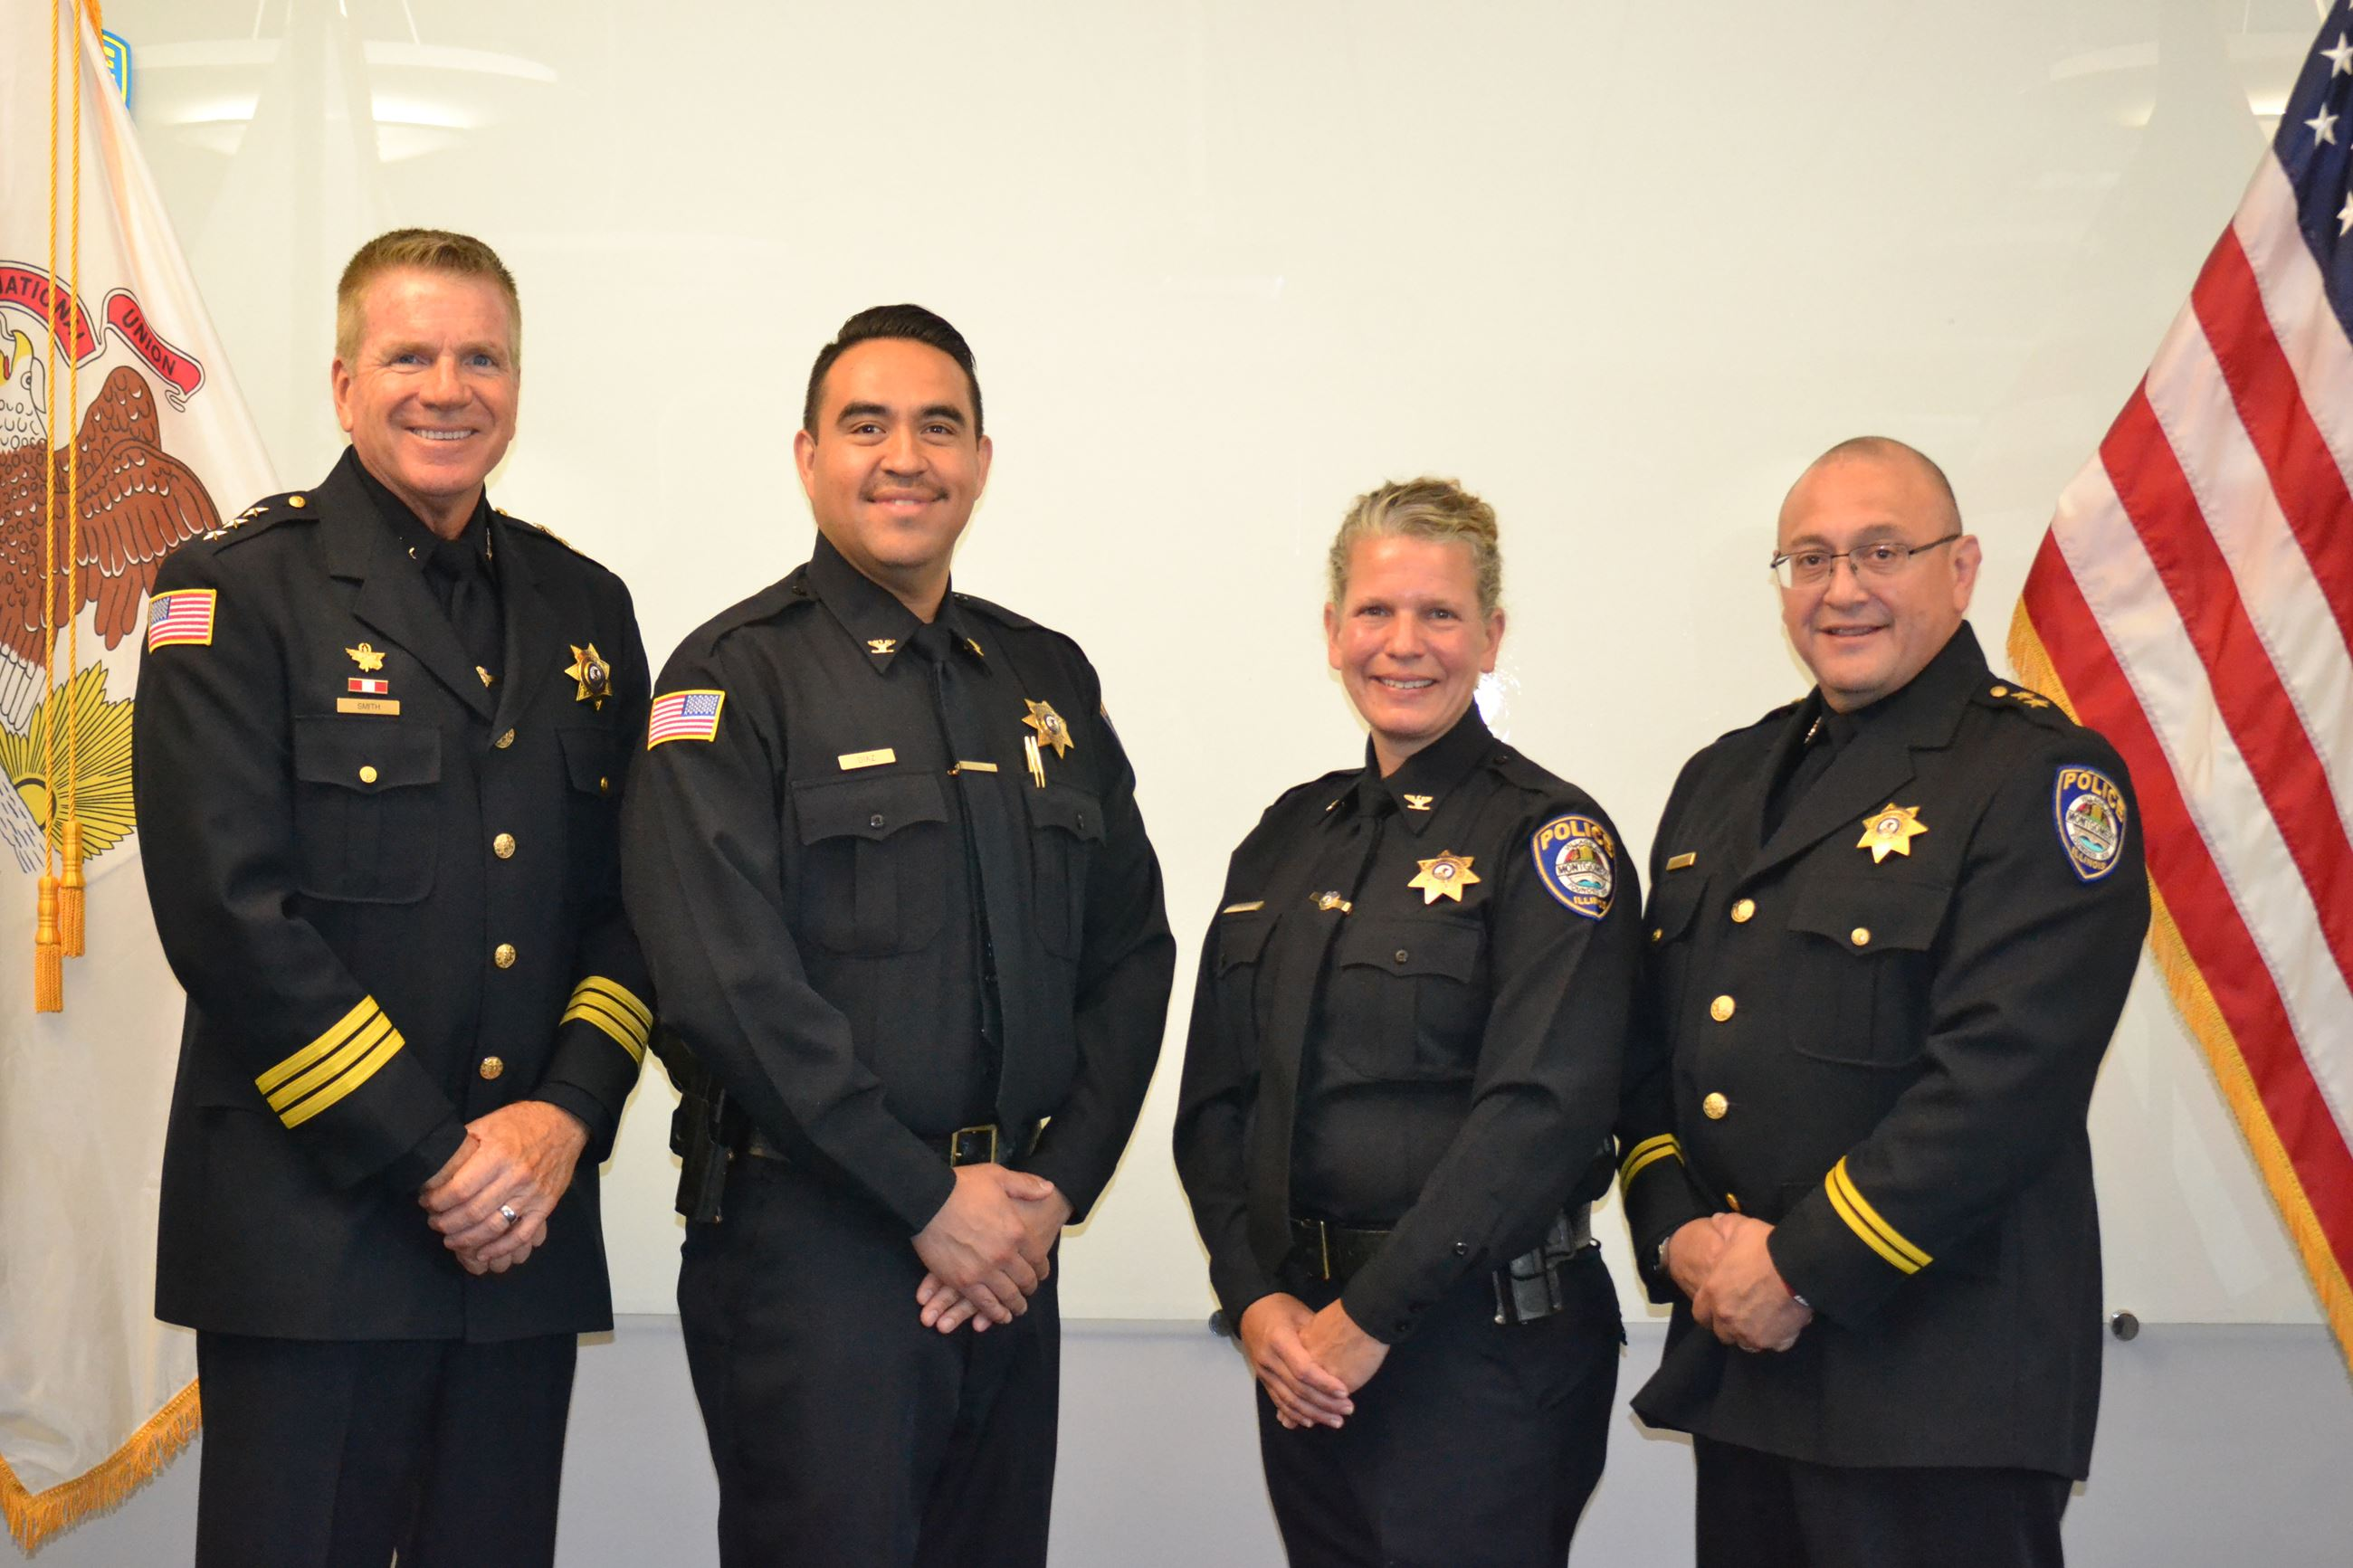 From left to right: Featuring Chief Phillip Smith, Commander Ismael Diaz, Commander Liz Palko and De